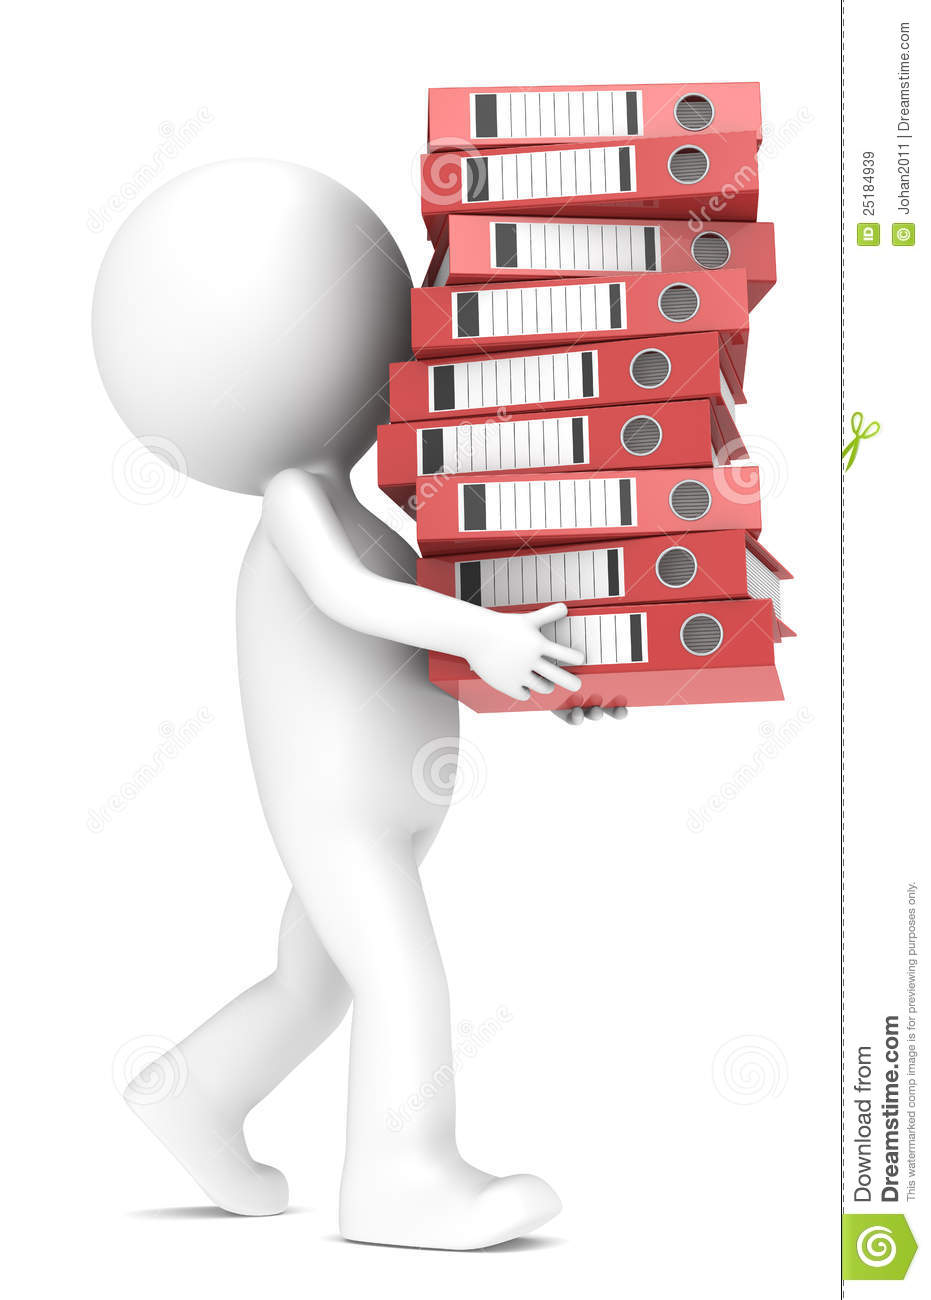 3D little human character carrying a large pile of Ring Binders. Red ...: www.dreamstime.com/royalty-free-stock-images-workload-image25184939